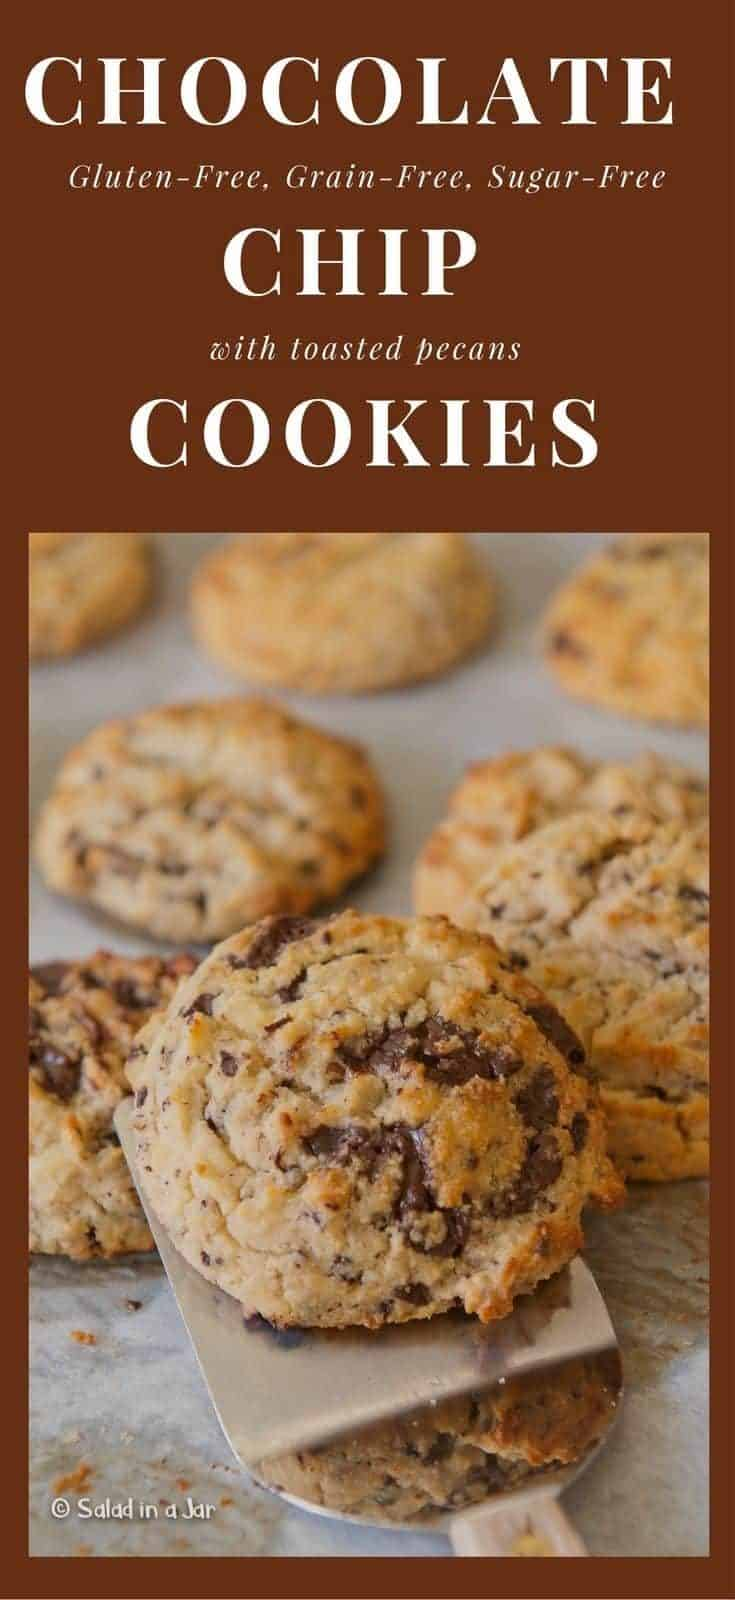 Grain-Free Chocolate Chip Cookies, Glutin-Free, Grain-Free, Sugar-Free Chocolate Chip Cookies--recipe includes almond flour, 85% chocolate and unsweetened applesauce